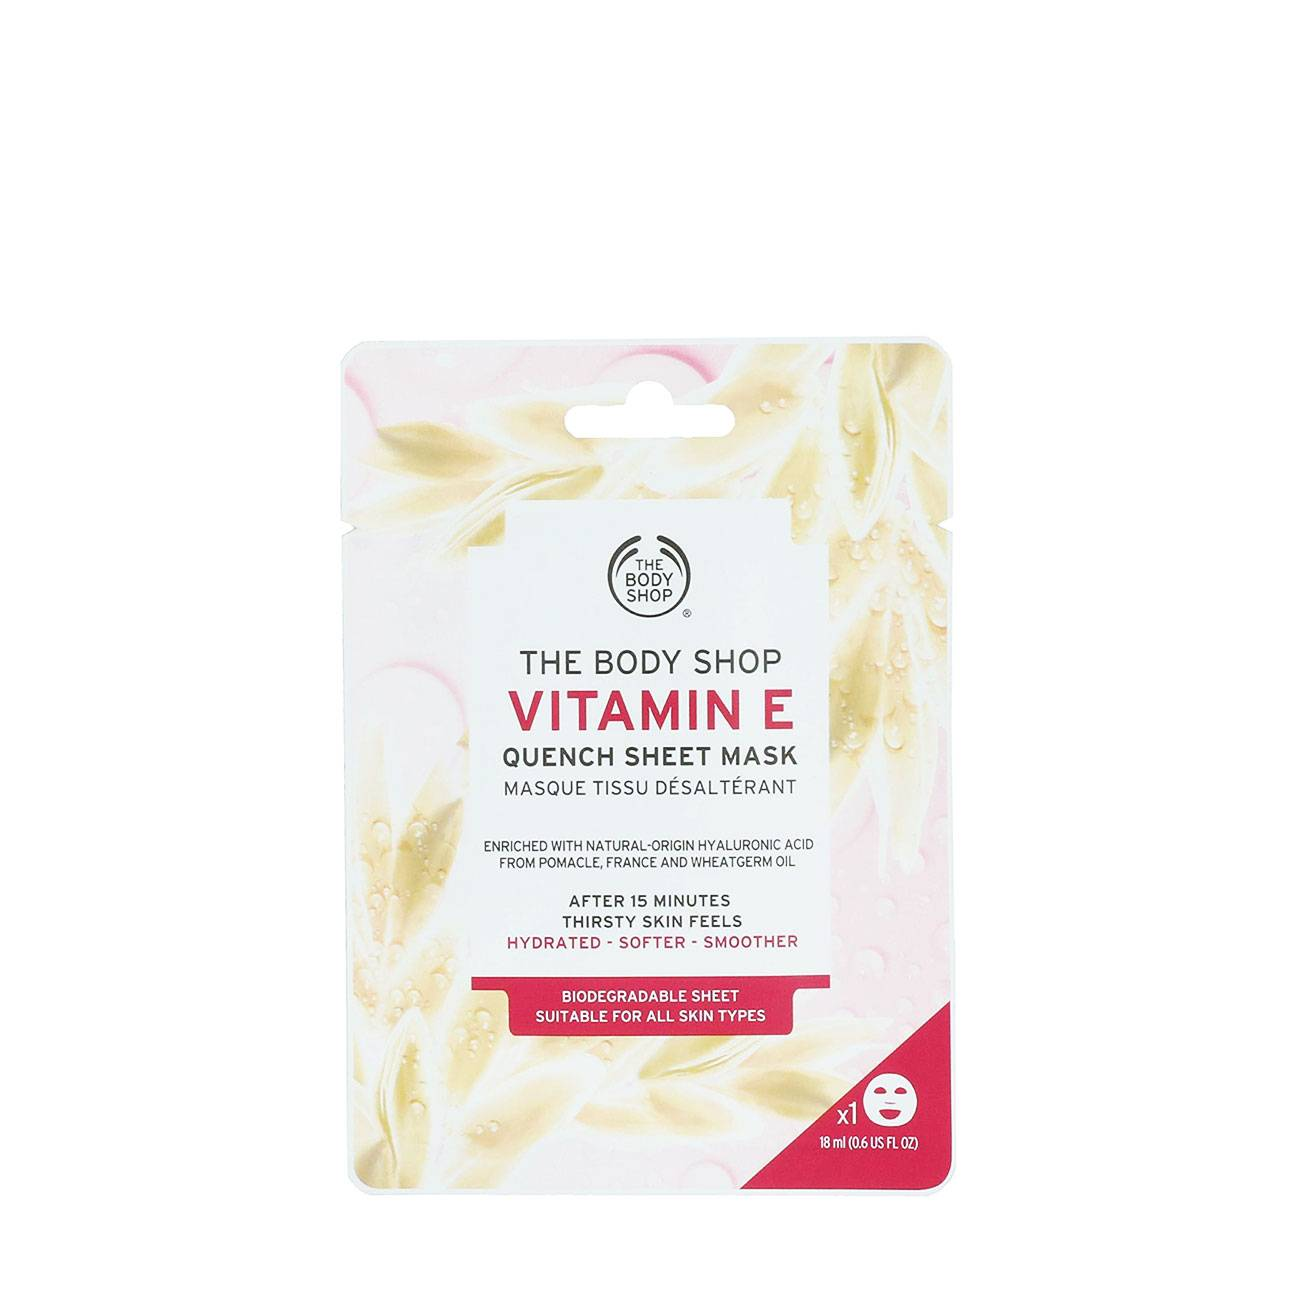 Vitamin E Quench Sheet Mask 18ml The Body Shop imagine 2021 bestvalue.eu